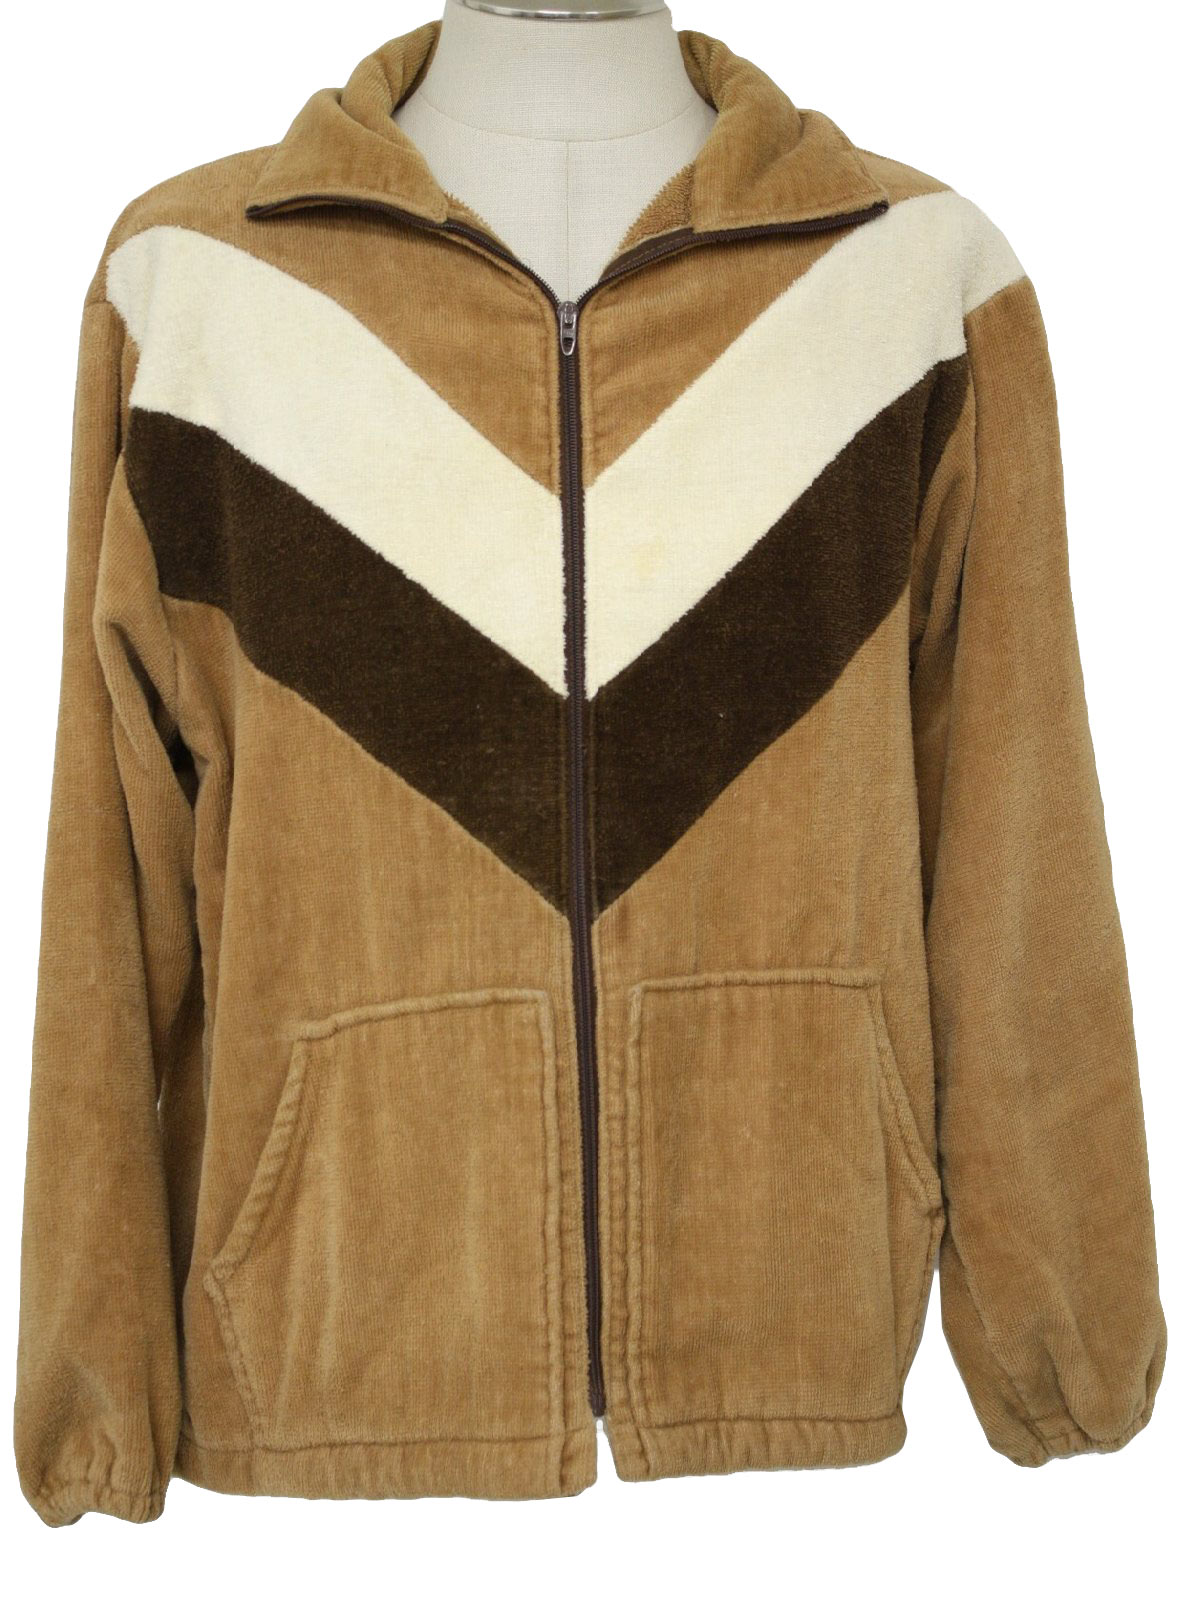 753f220401341 Retro 1970's Jacket (Sea Island Actionwear) : 70s -Sea Island ...